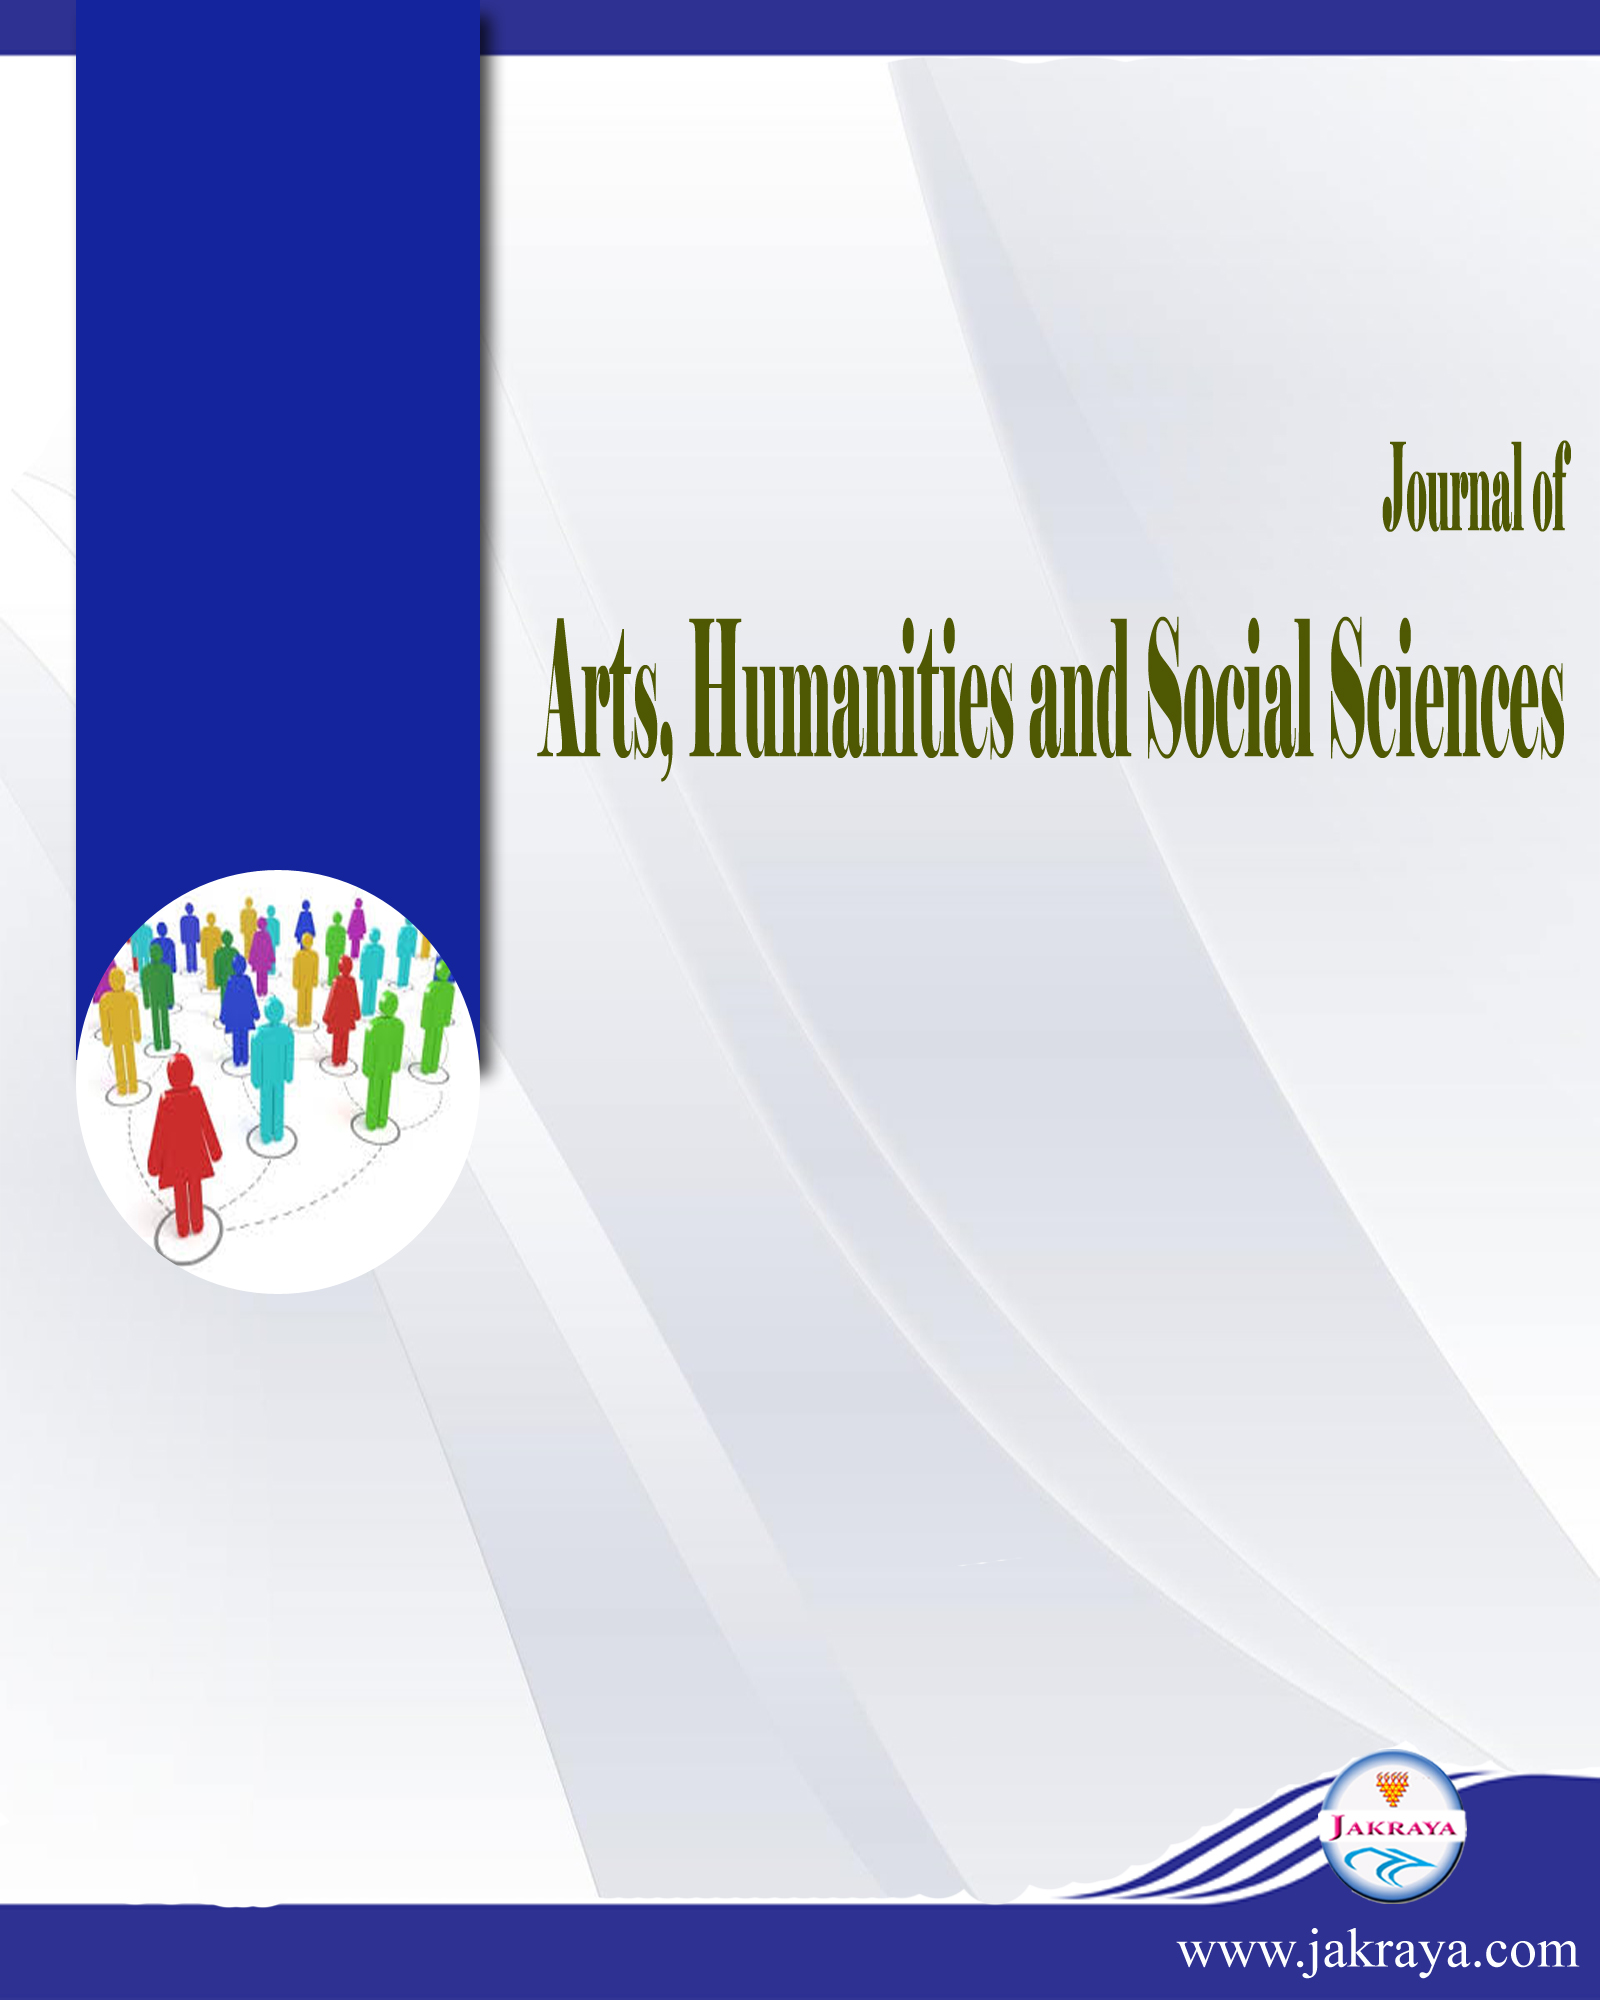 Journal of Art, Humanities and Social Science